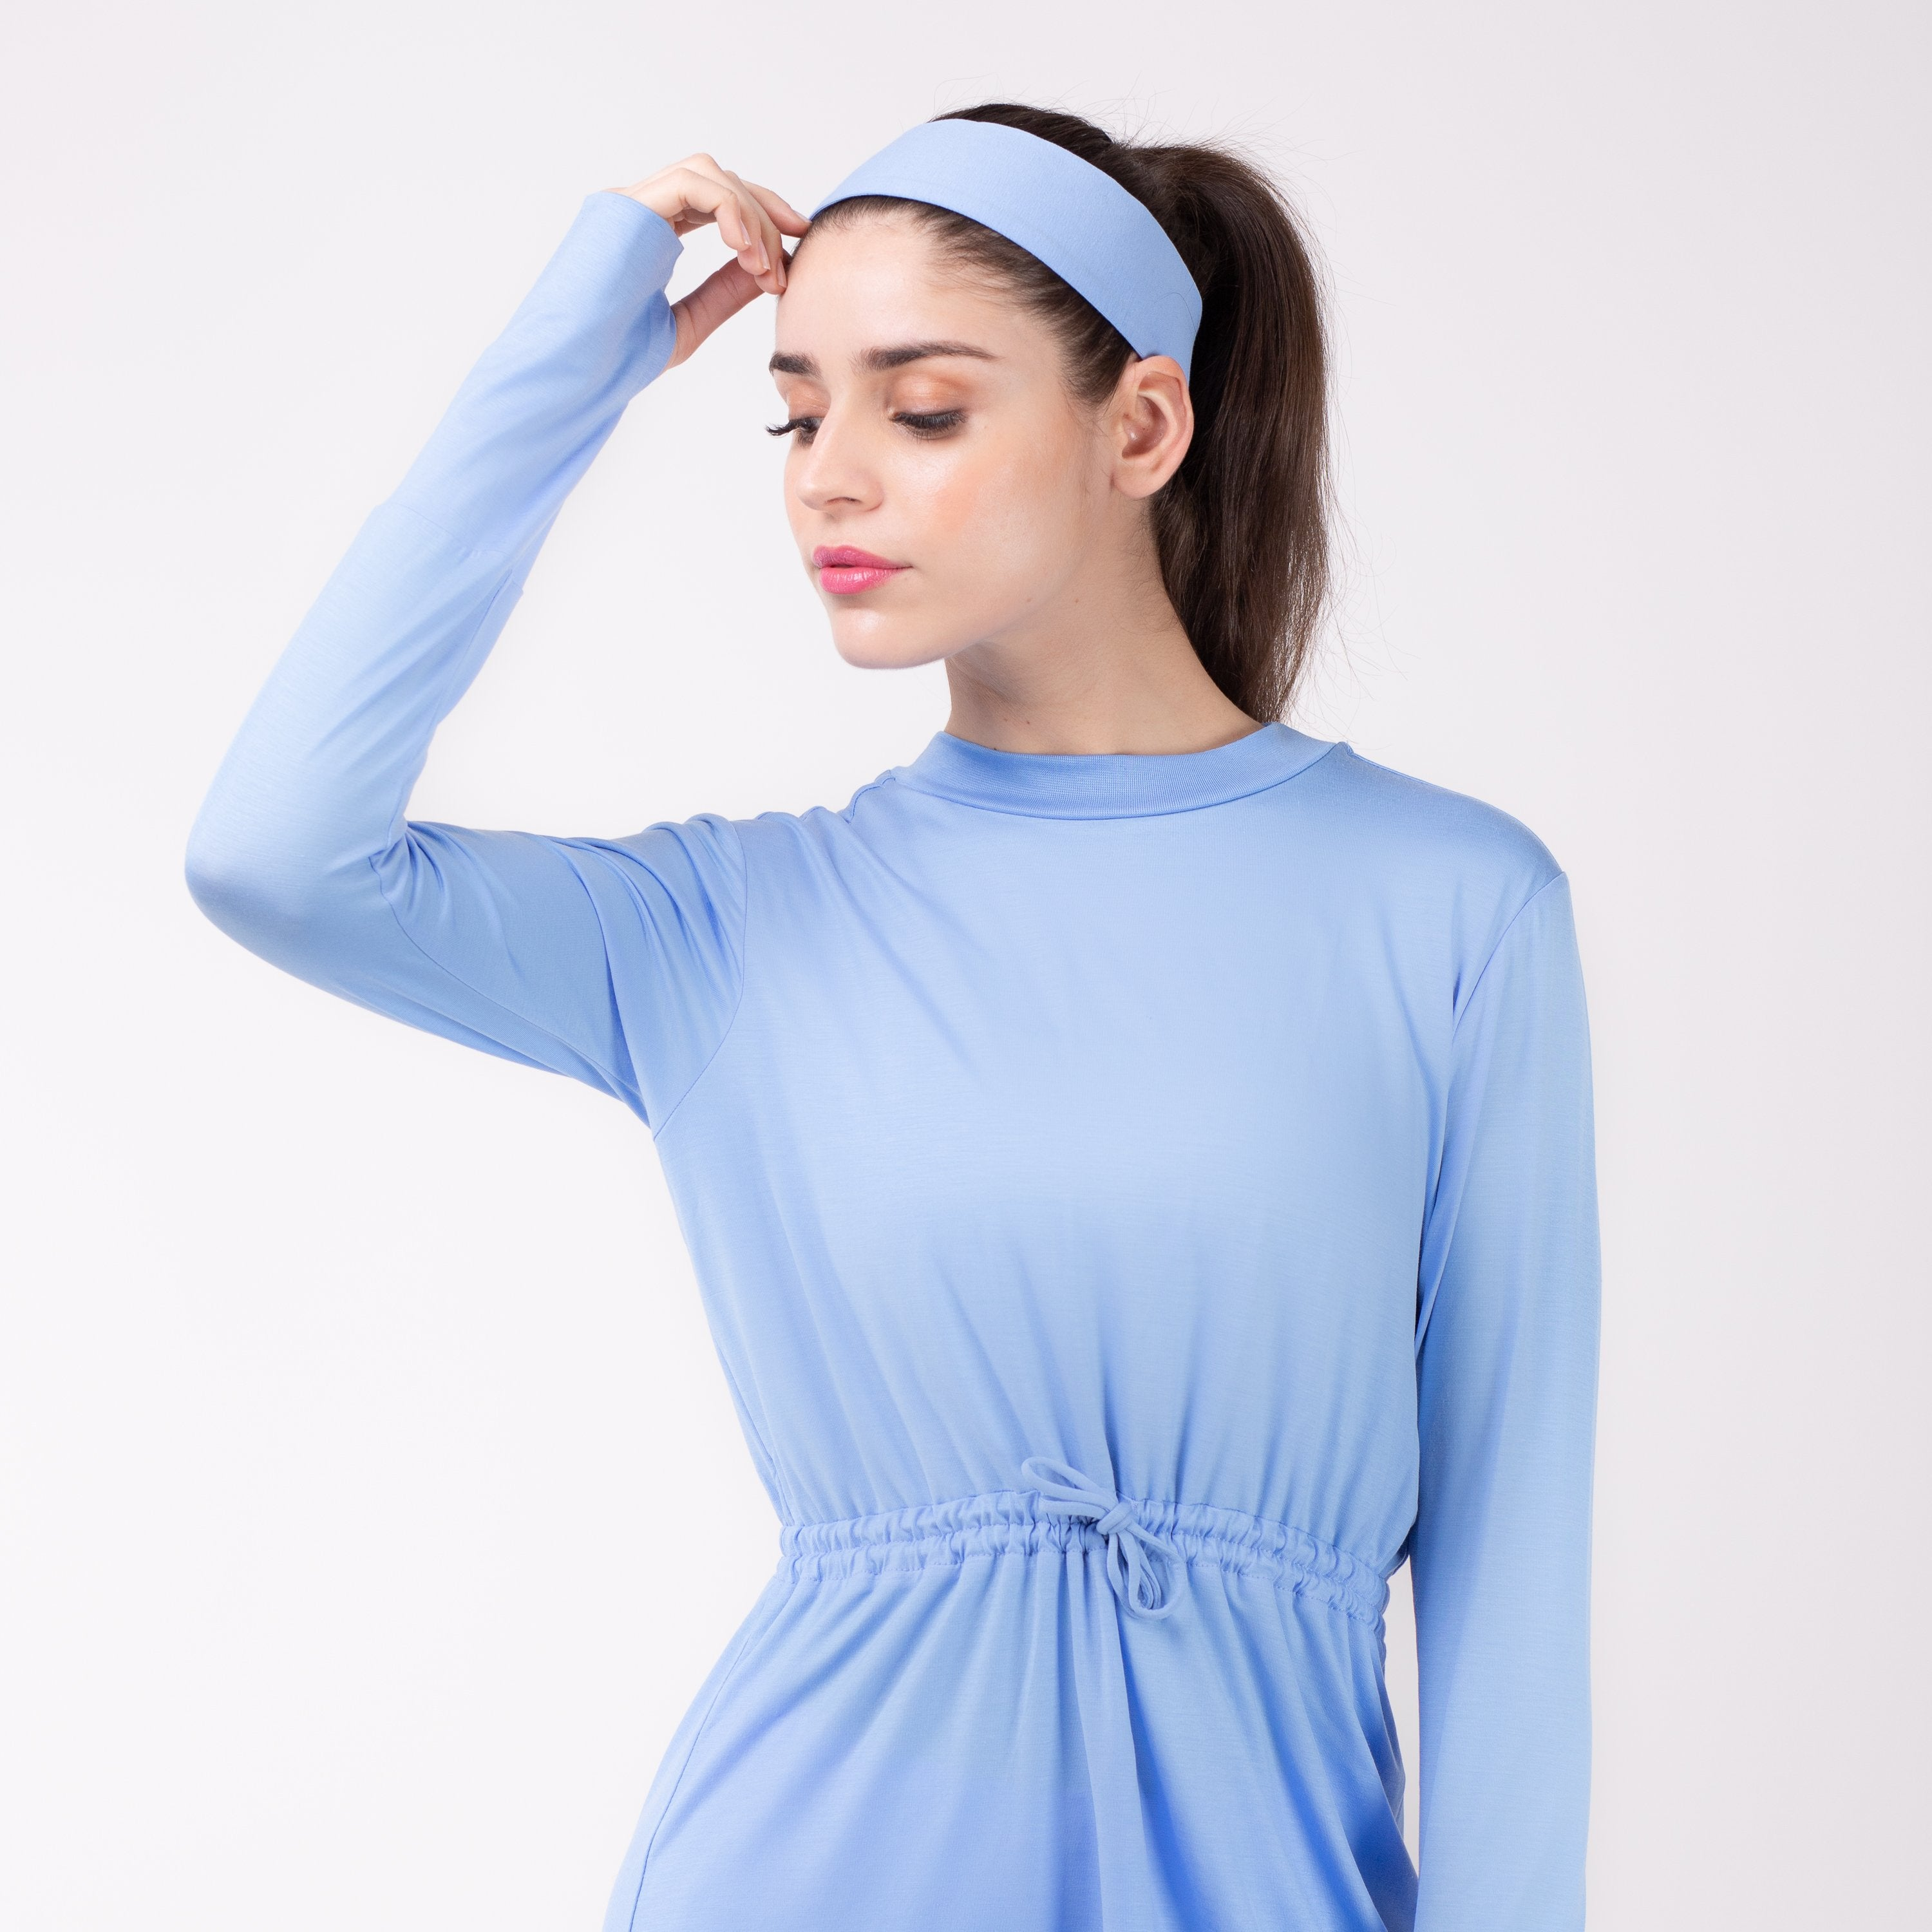 Woman looking left in sky blue shirt with matching sky blue HAWA headband.